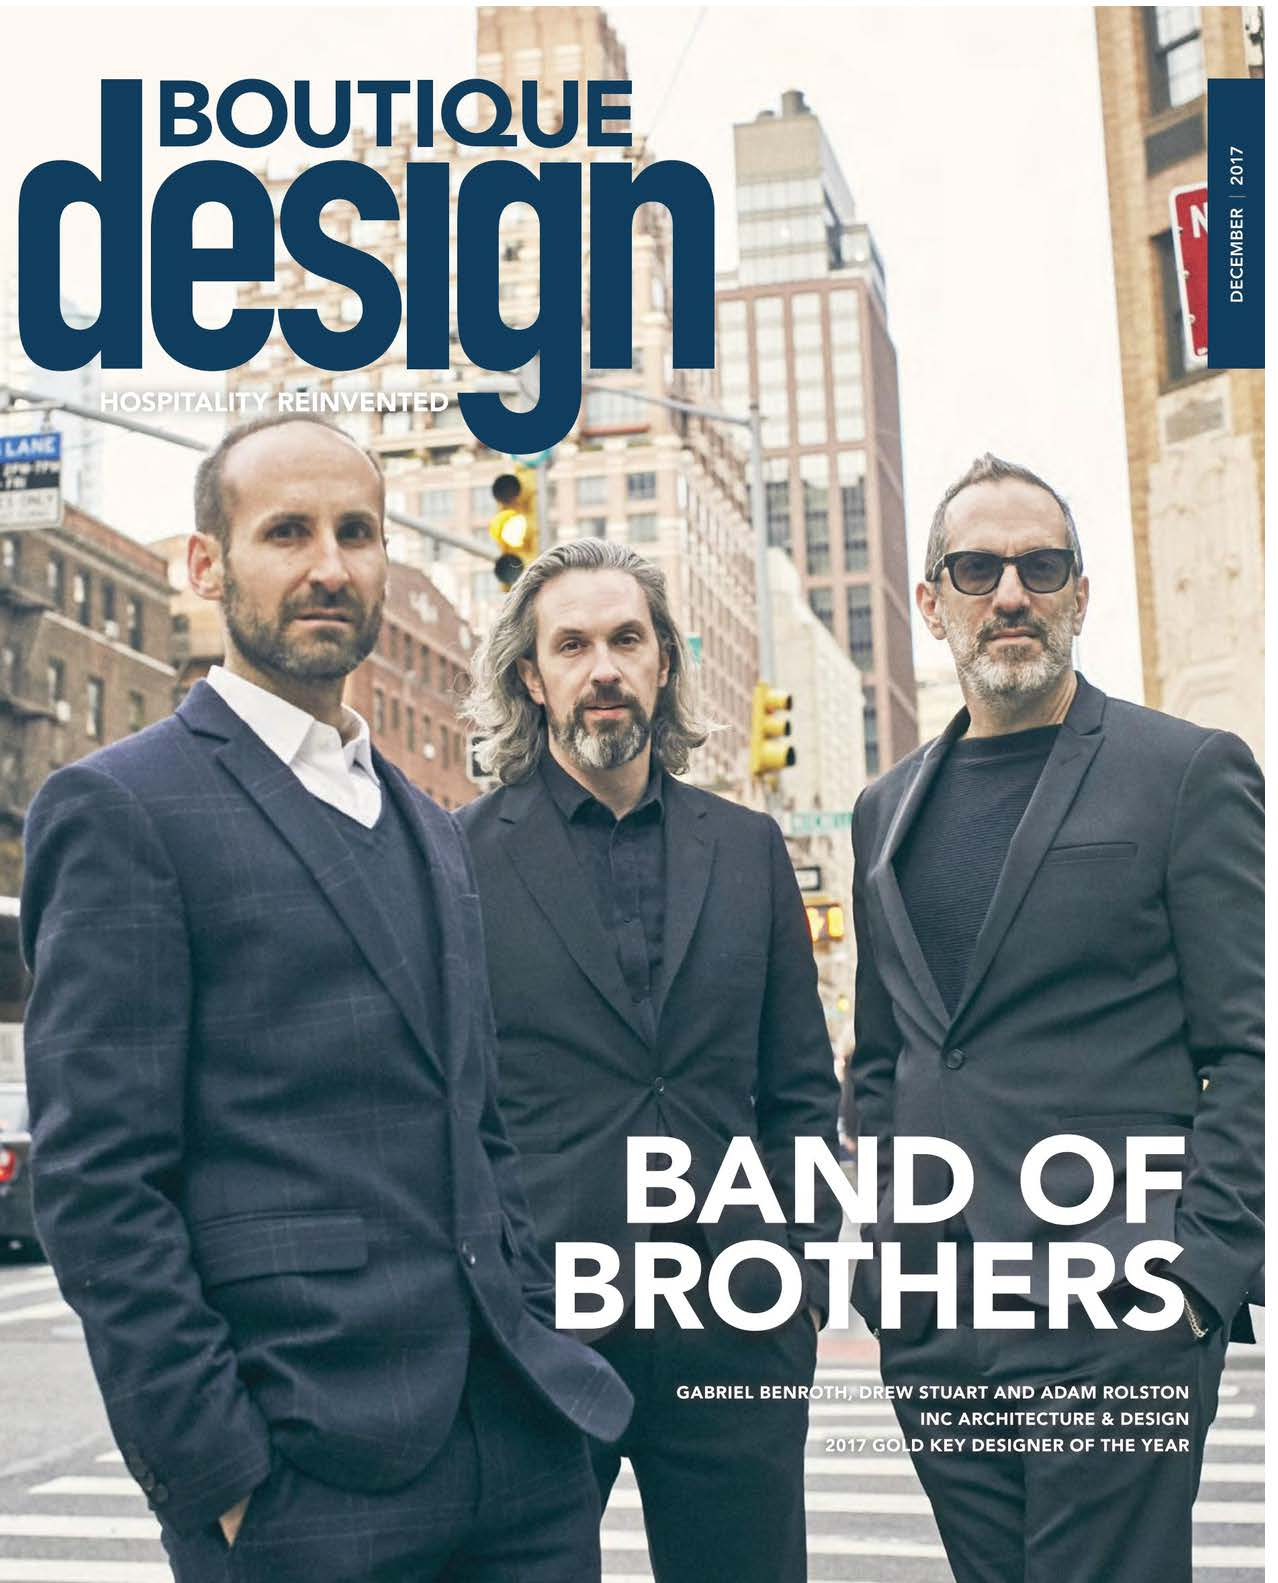 Boutique Design Cover - December 2017 Article.jpg